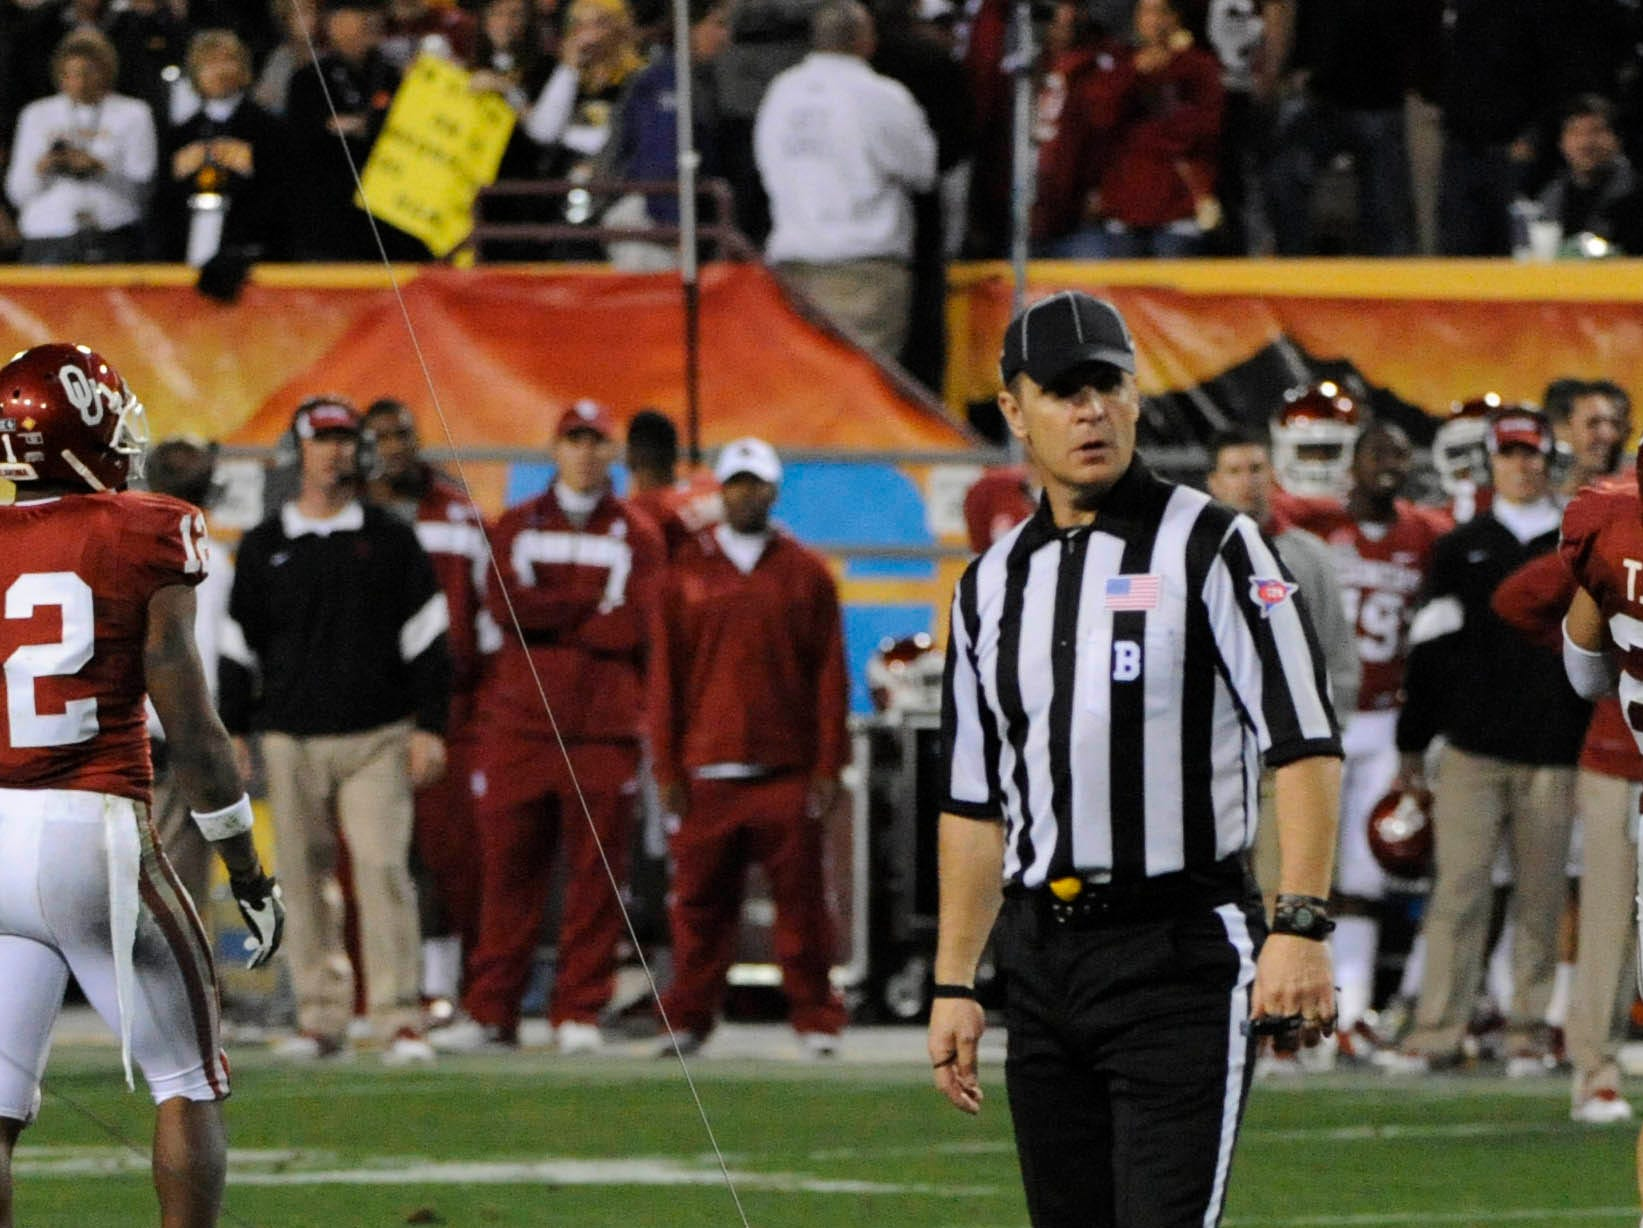 Dec 30, 2011; Tempe, AZ, USA; A referee looks at a fallen skycam during the second half of the 2011 Insight Bowl between Iowa Hawkeyes and Oklahoma Sooners at the Sun Devil Stadium. Mandatory Credit: Richard Mackson-USA TODAY Sports